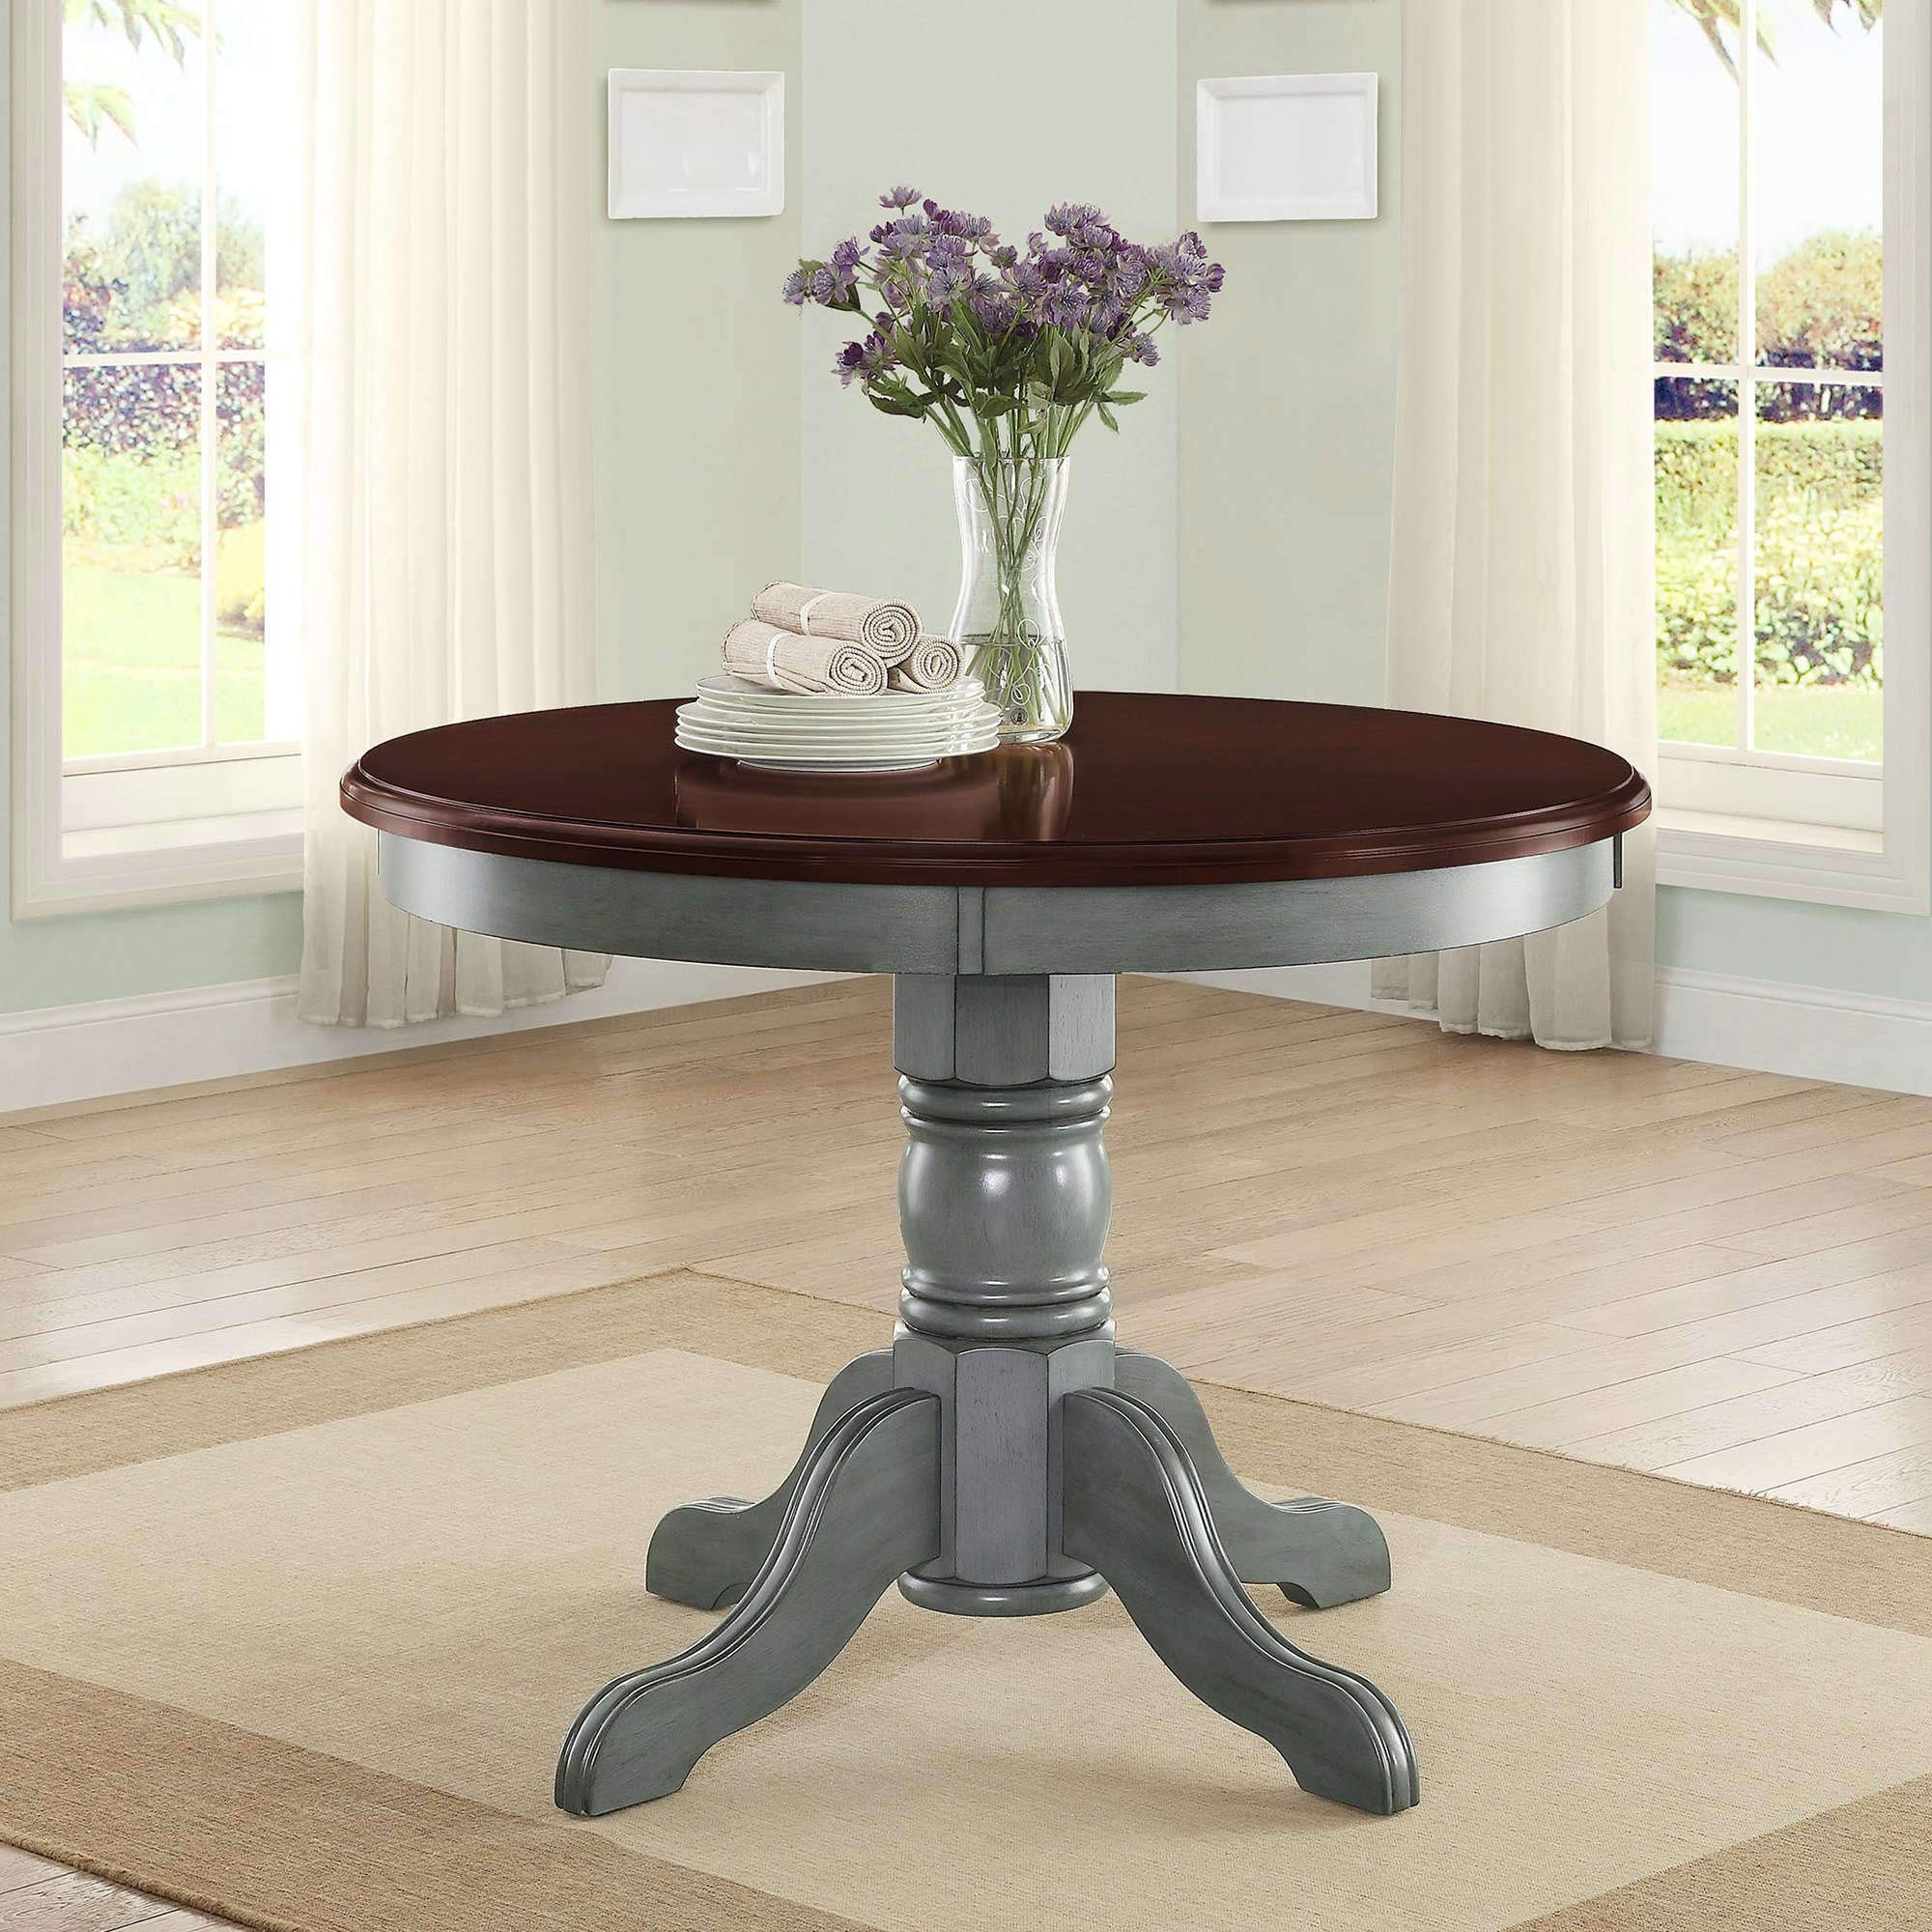 Amazon Com 42 Round Table Top Easily Accommodates Seating For 4 Multi Step Blue Tables